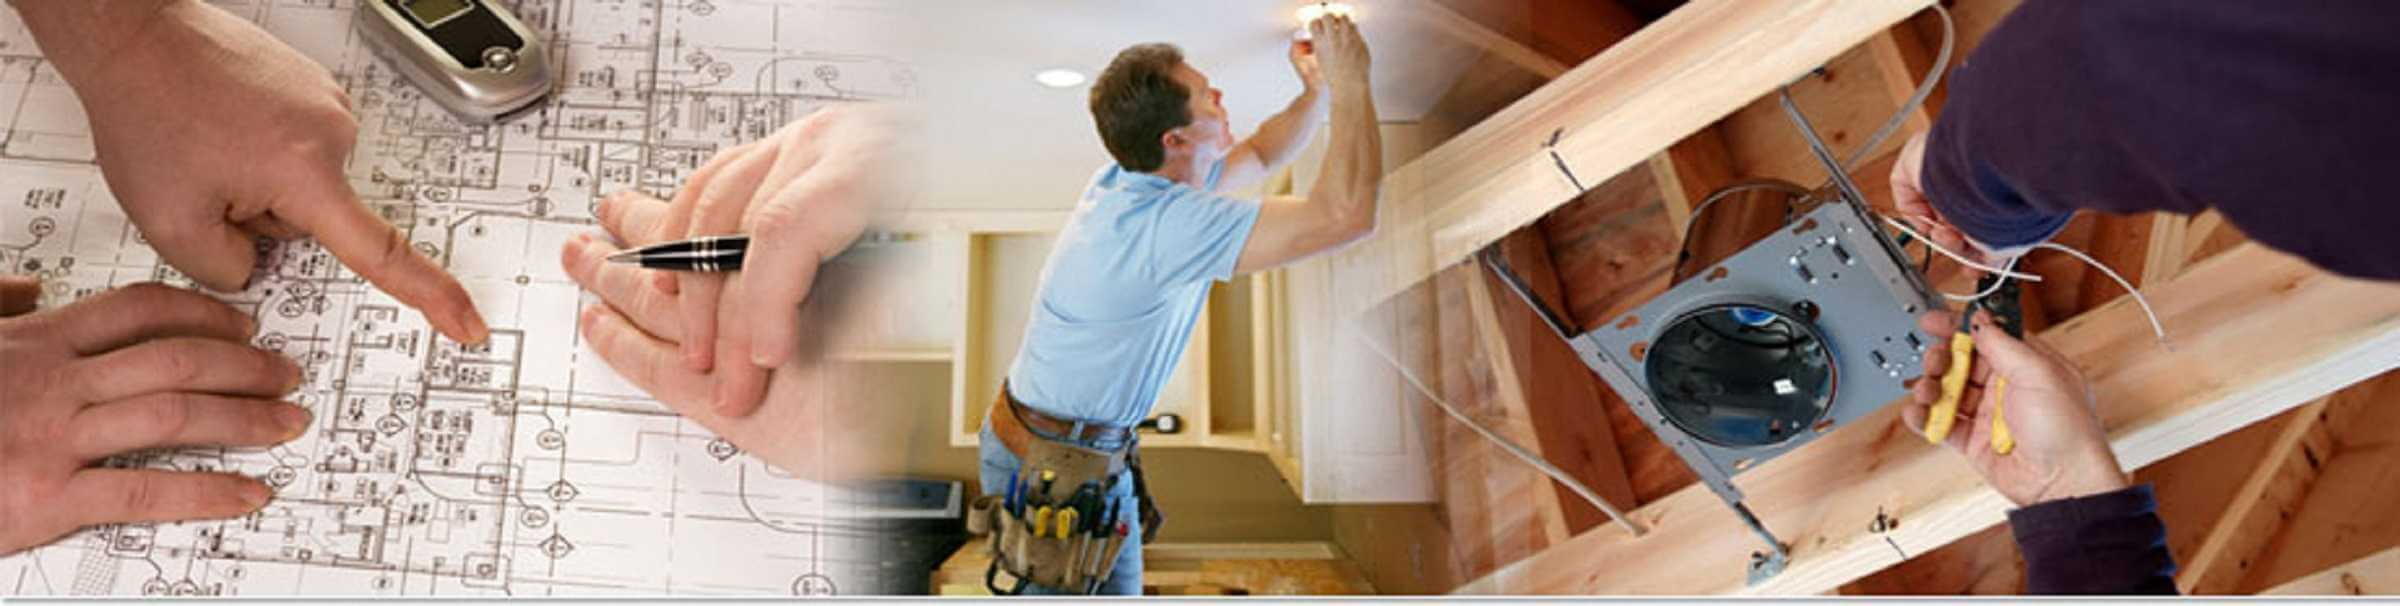 Residential Electricians All City Electrical And Lighting